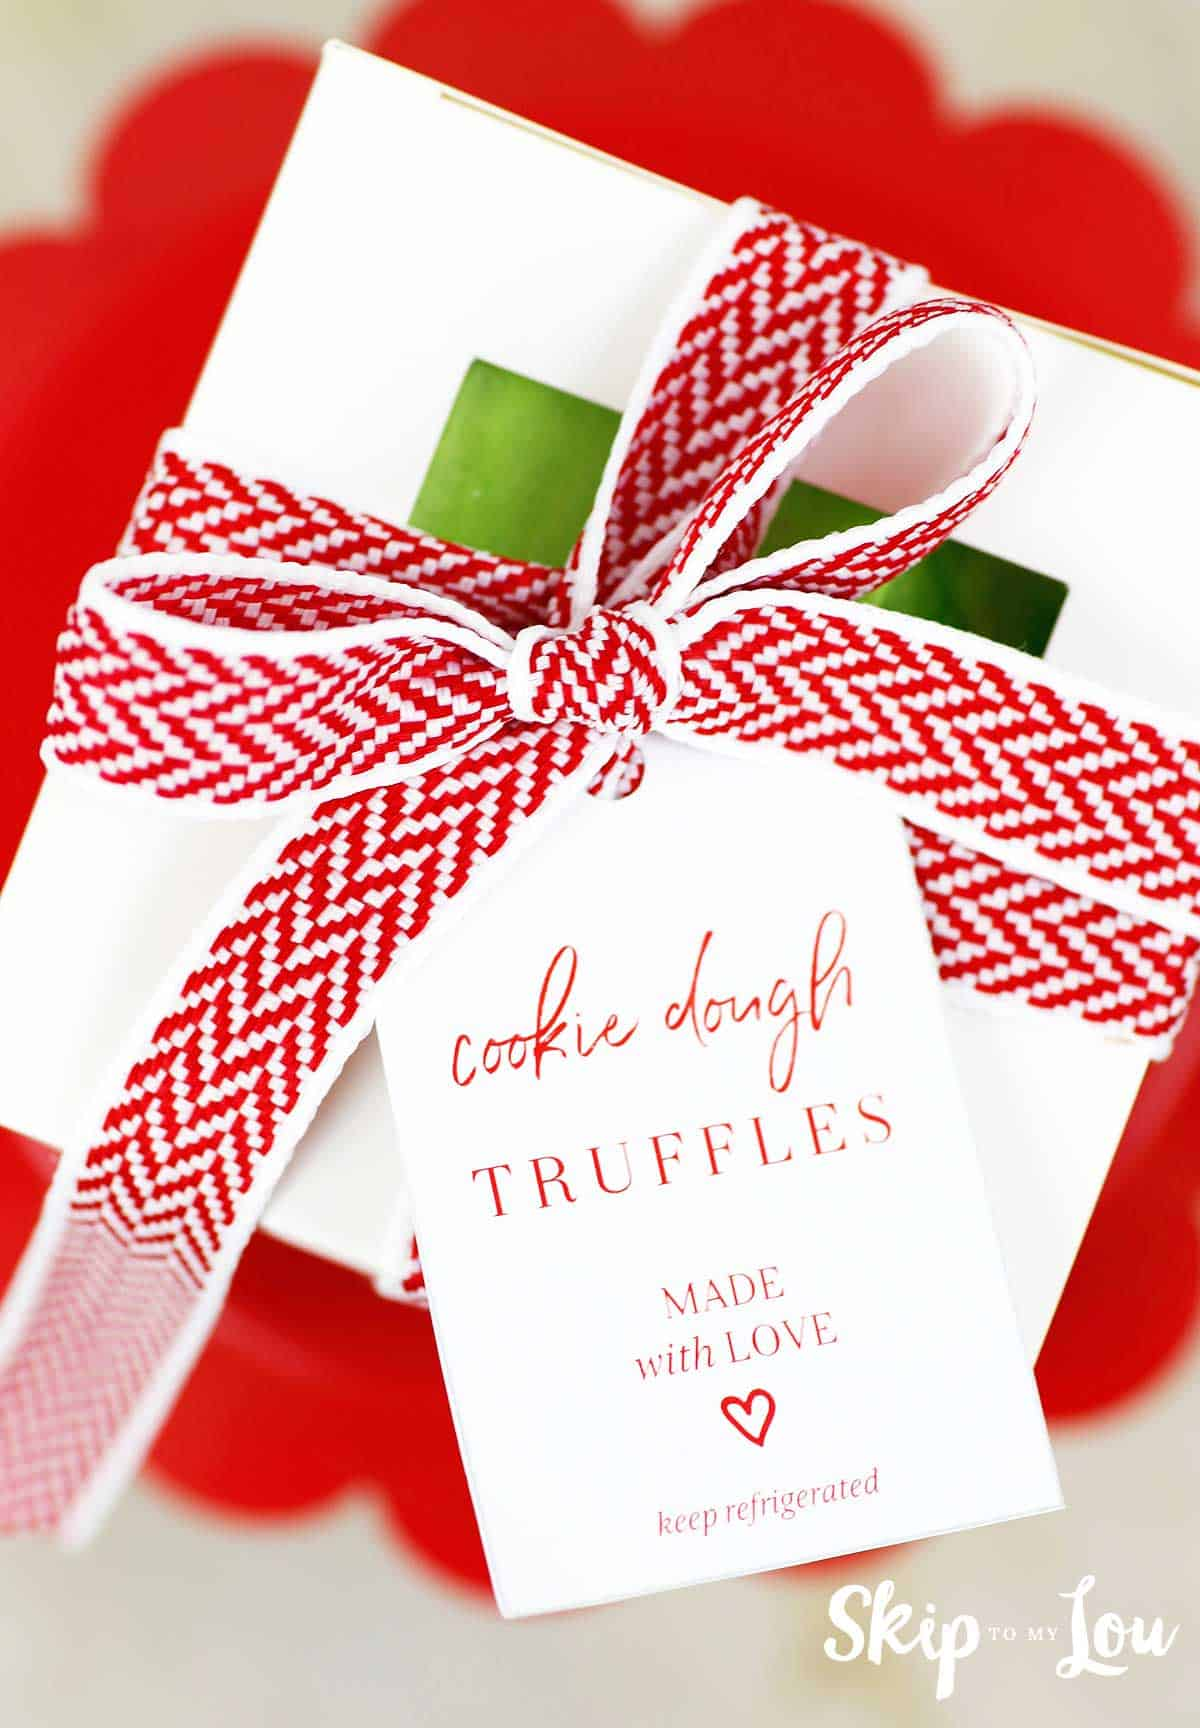 cookie dough truffles edible gift with read and white ribbon bow and cookie dough truffles made with love gift tag